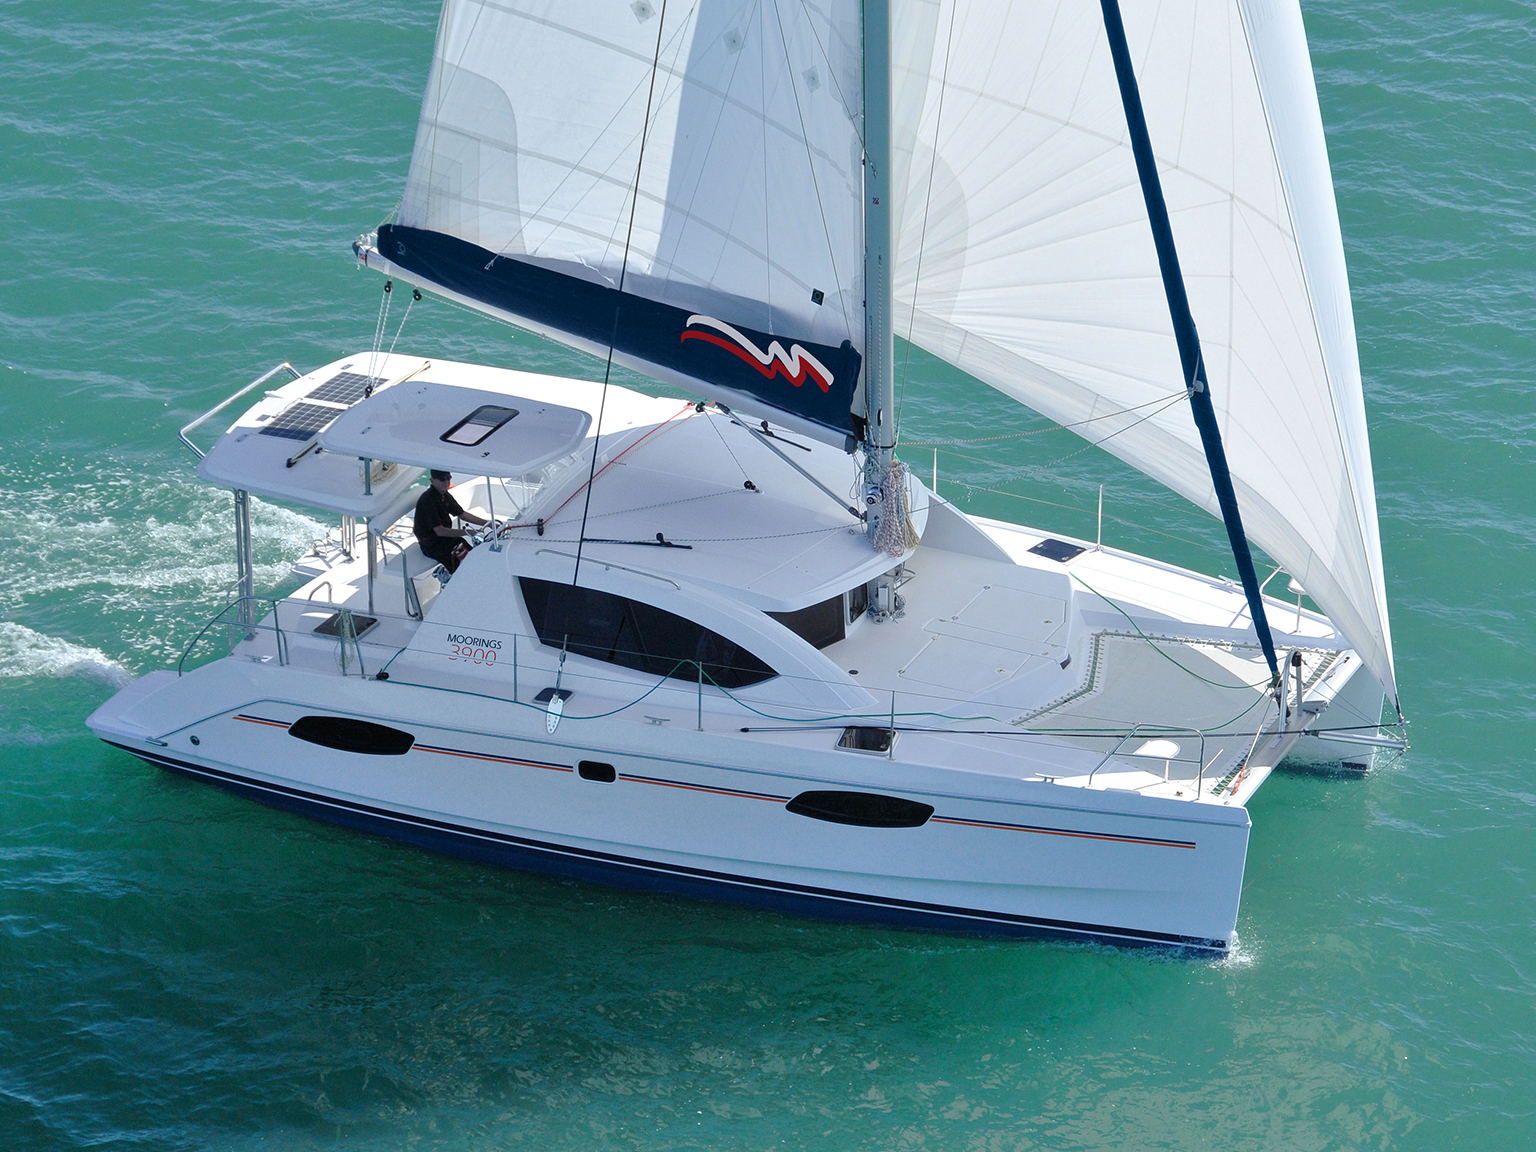 Sailing Catamaran: Moorings 3900 - 4 Cabin Catamaran